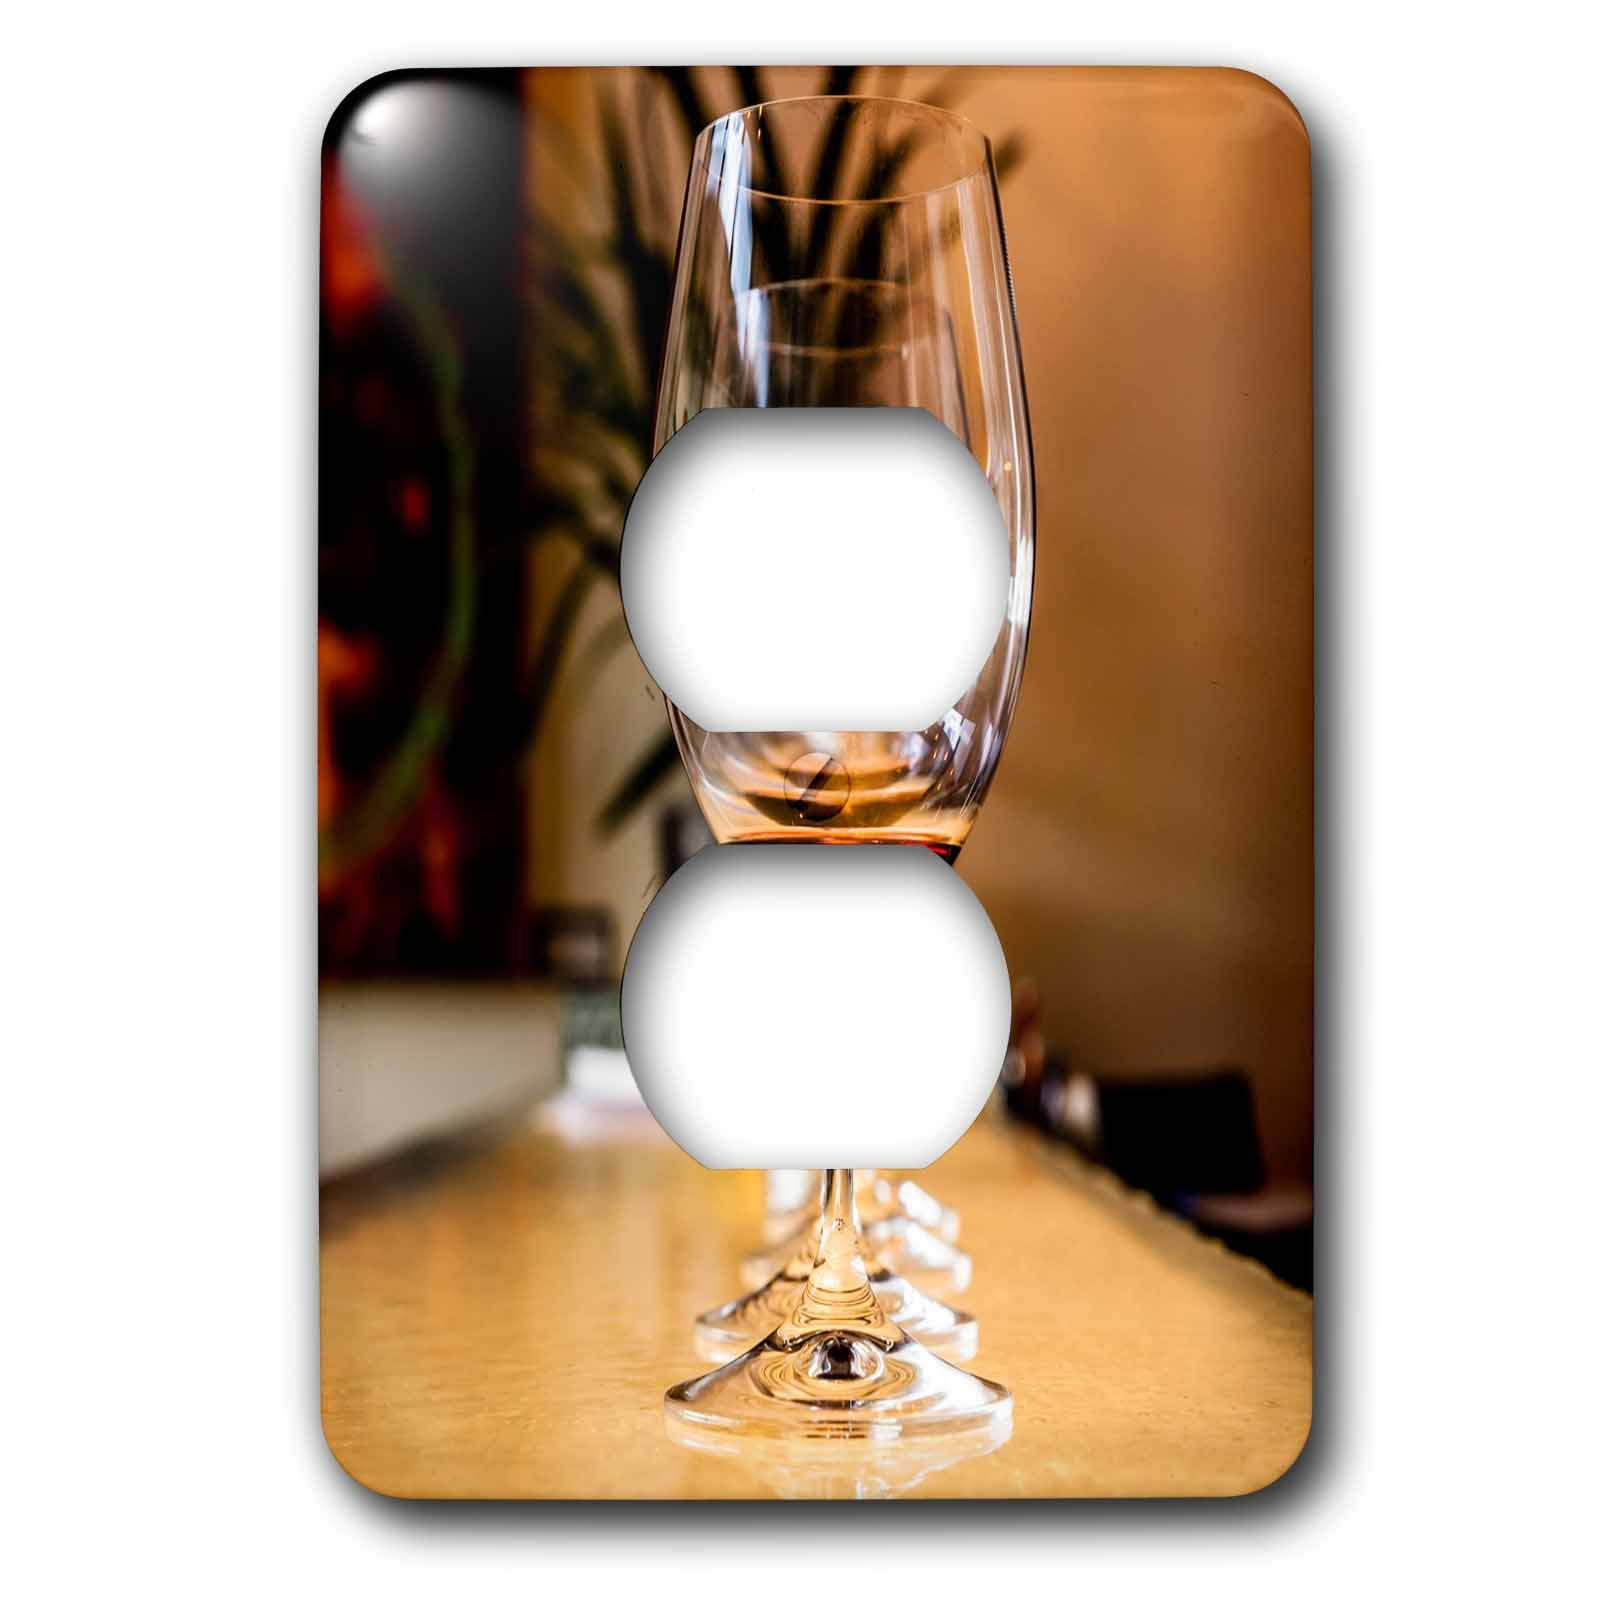 3dRose Danita Delimont - Beverages - Usa, Washington, Wine glasses aligned on counter. - Light Switch Covers - 2 plug outlet cover (lsp_260513_6)